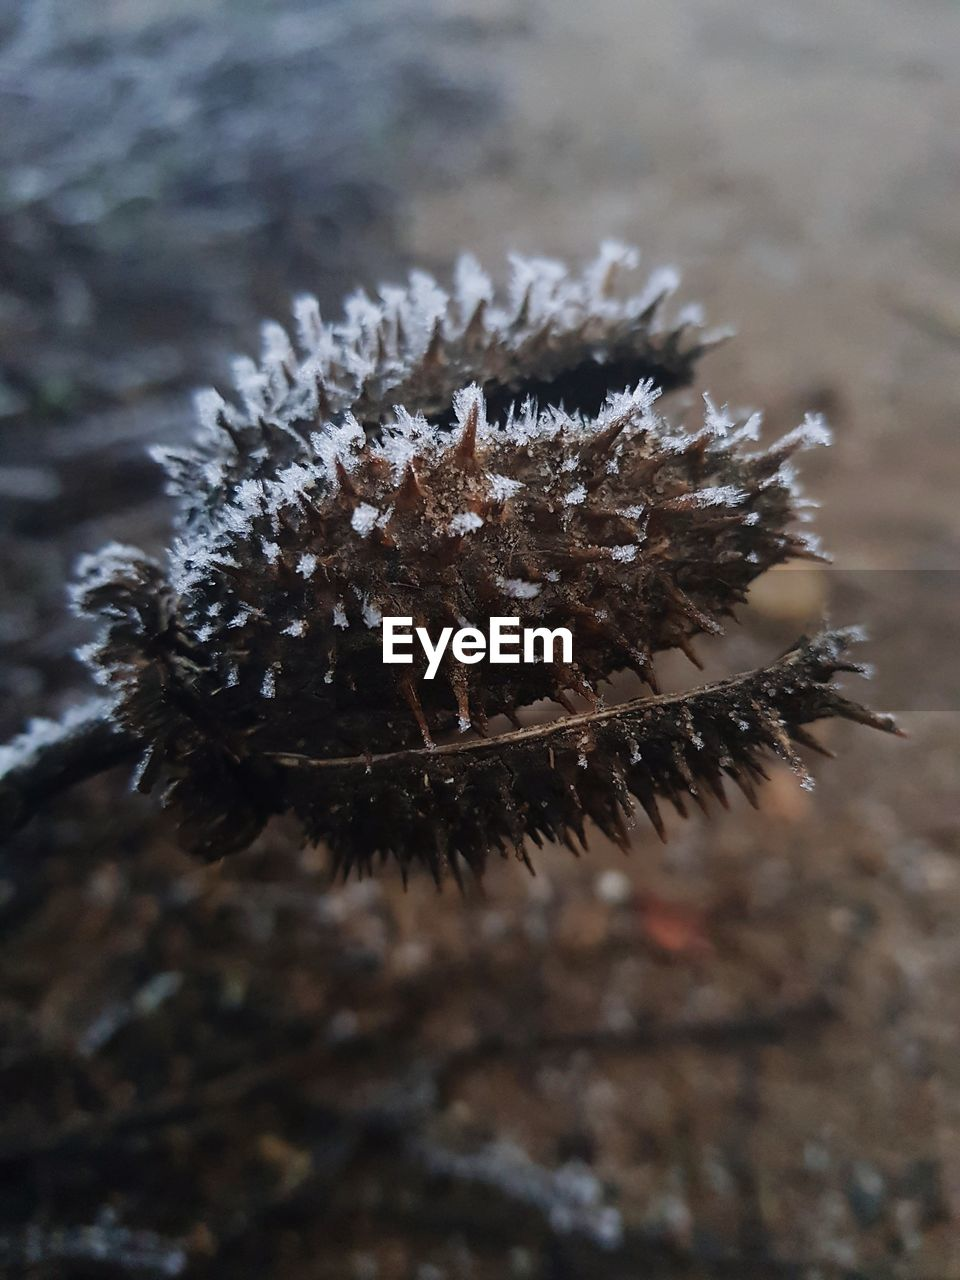 focus on foreground, close-up, no people, nature, day, plant, outdoors, high angle view, land, winter, cold temperature, beauty in nature, field, animal, spiked, brown, tranquility, one animal, snow, spiky, dried